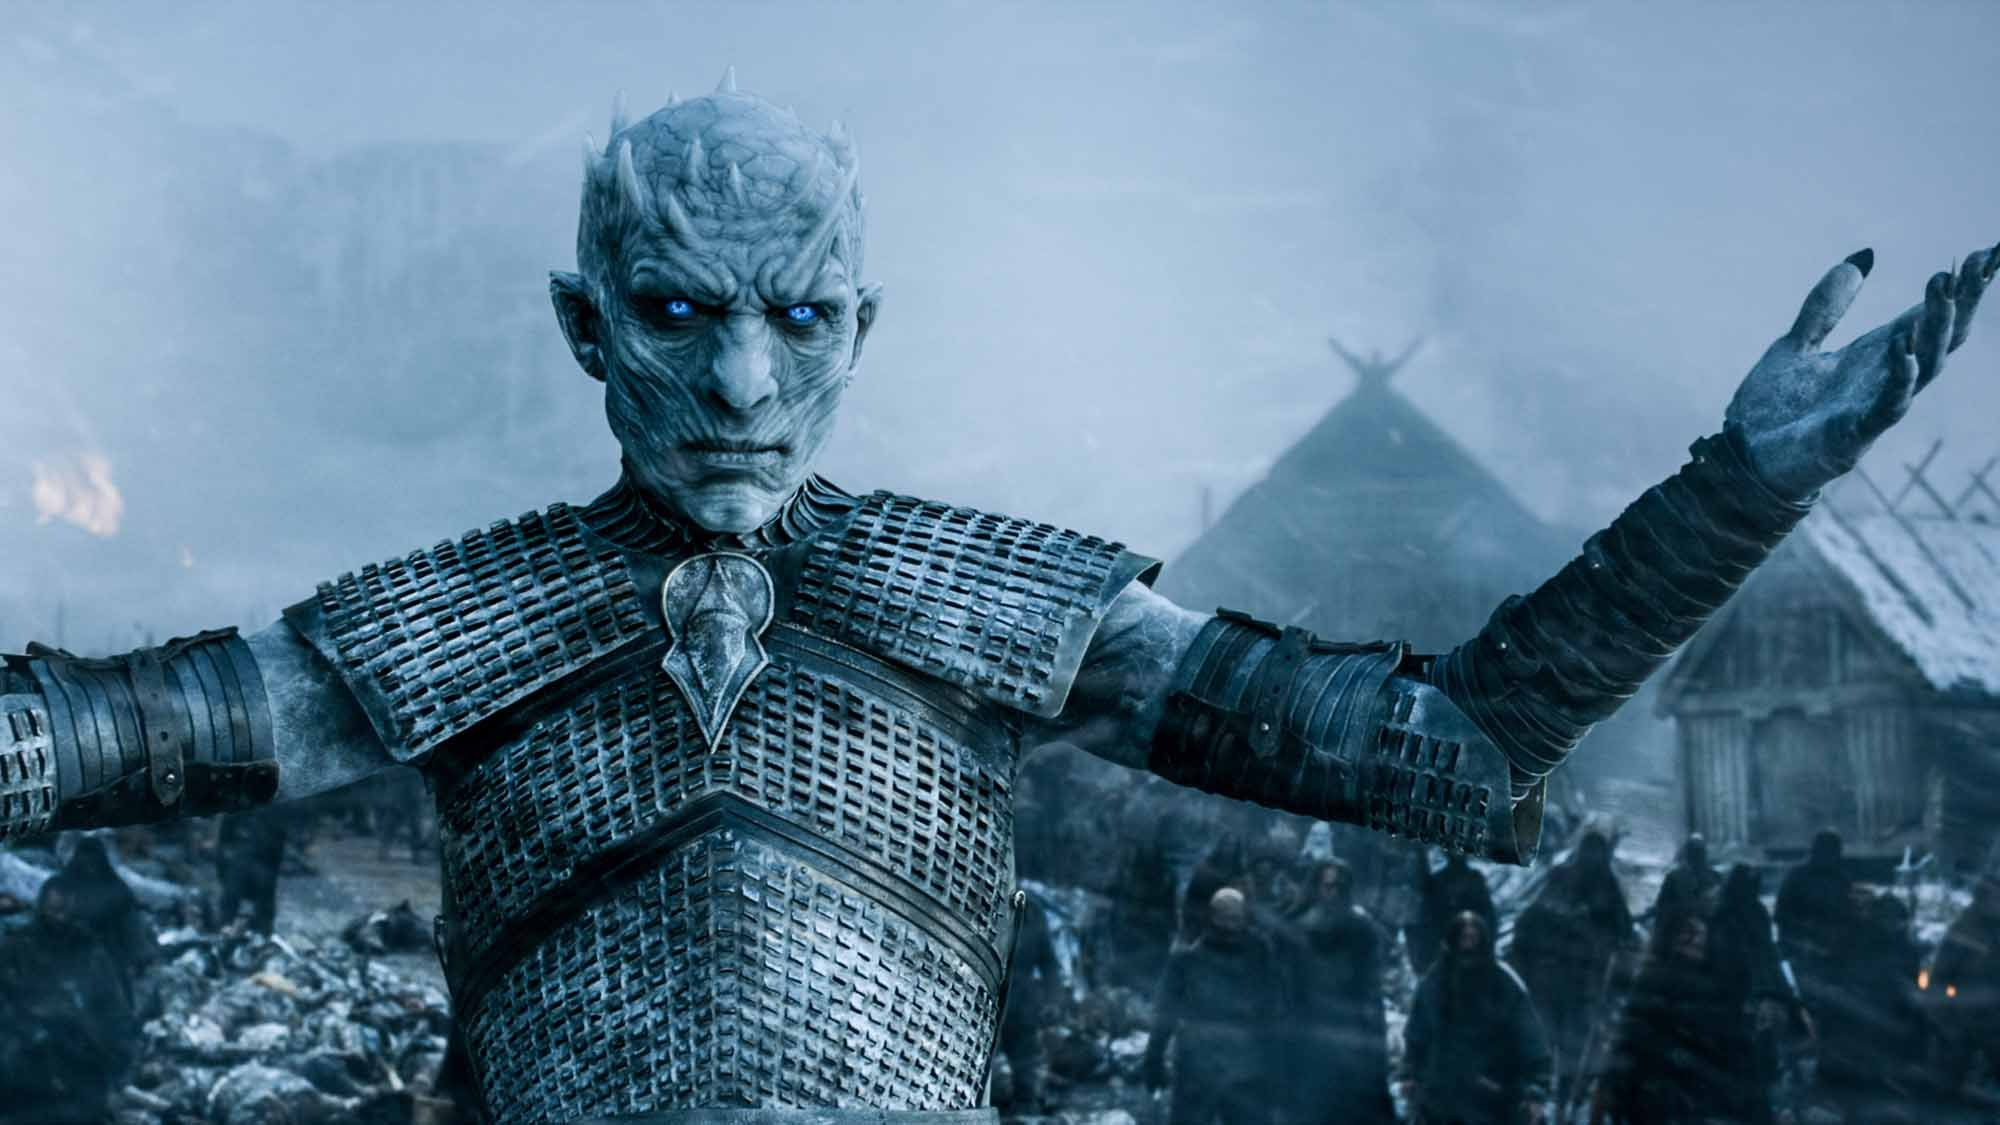 Night King white walker hardhome Game of Thrones HBO